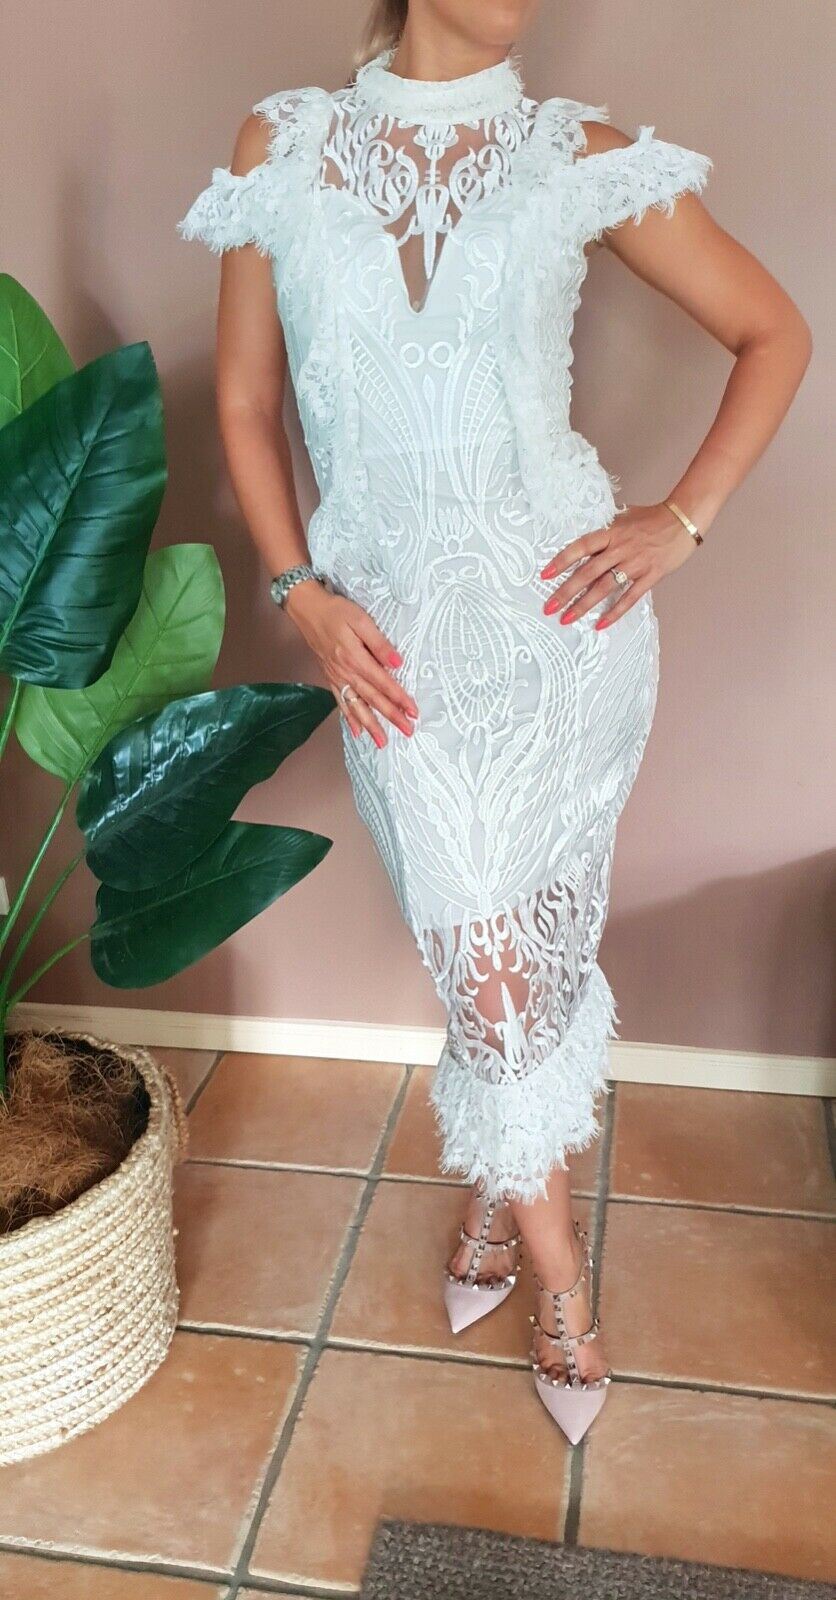 Stunning European made, high quality lace dress - NEW